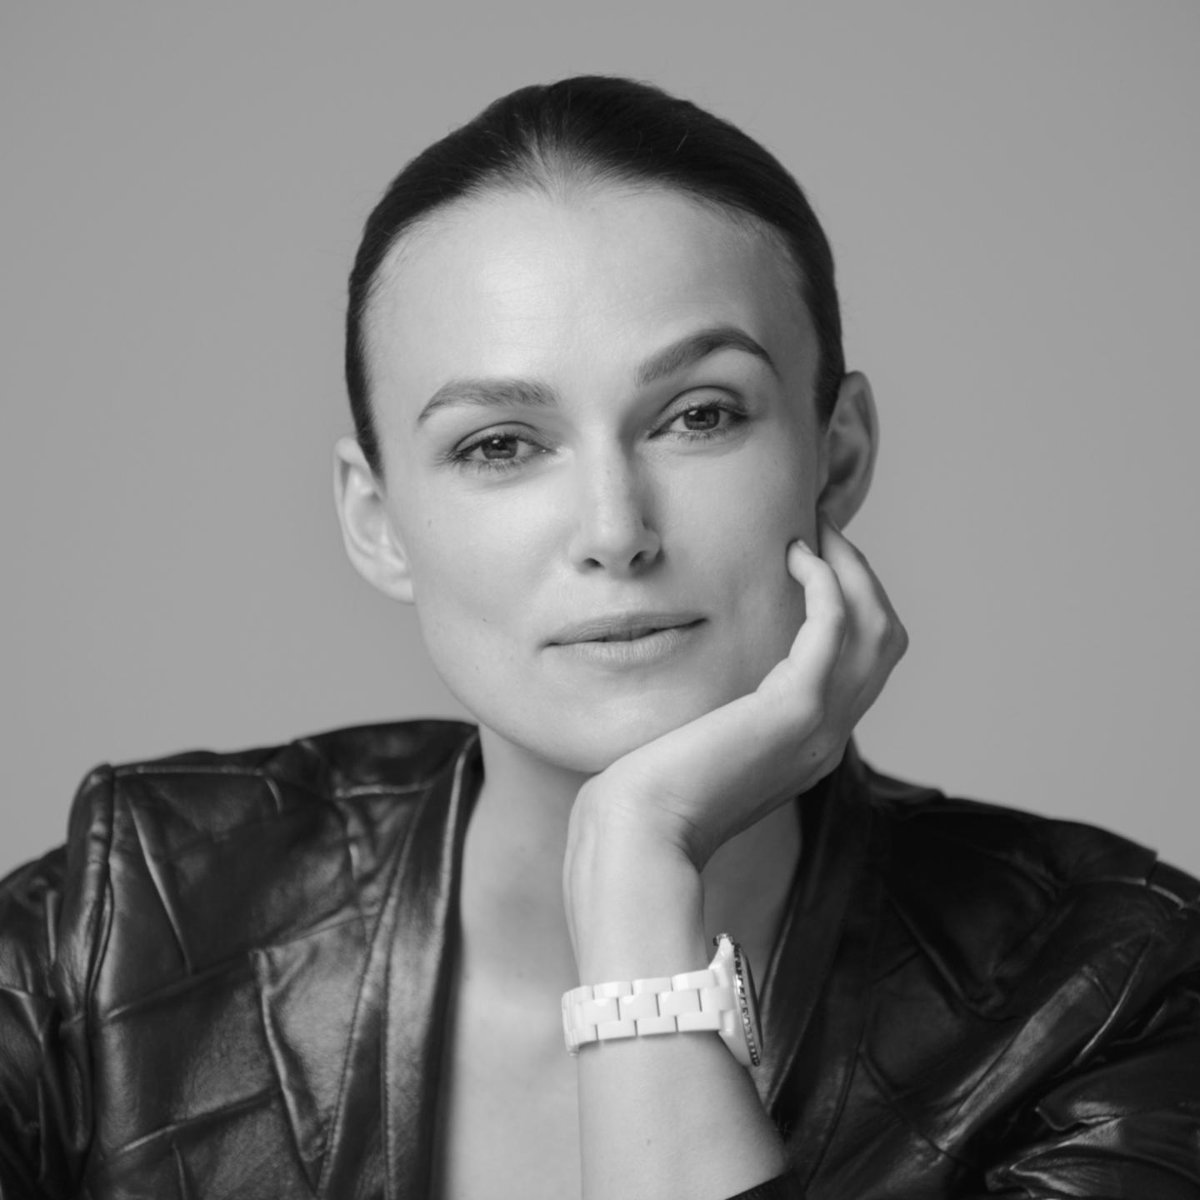 THE NEW J12. IT'S ALL ABOUT SECONDS.15 seconds with Keira Knightley, including a decisive one. Discover the collection on http://chanel.com/-KeiraKnightley_j12 …#TheNewJ12 #CHANELWatches #ItsAllAboutSeconds